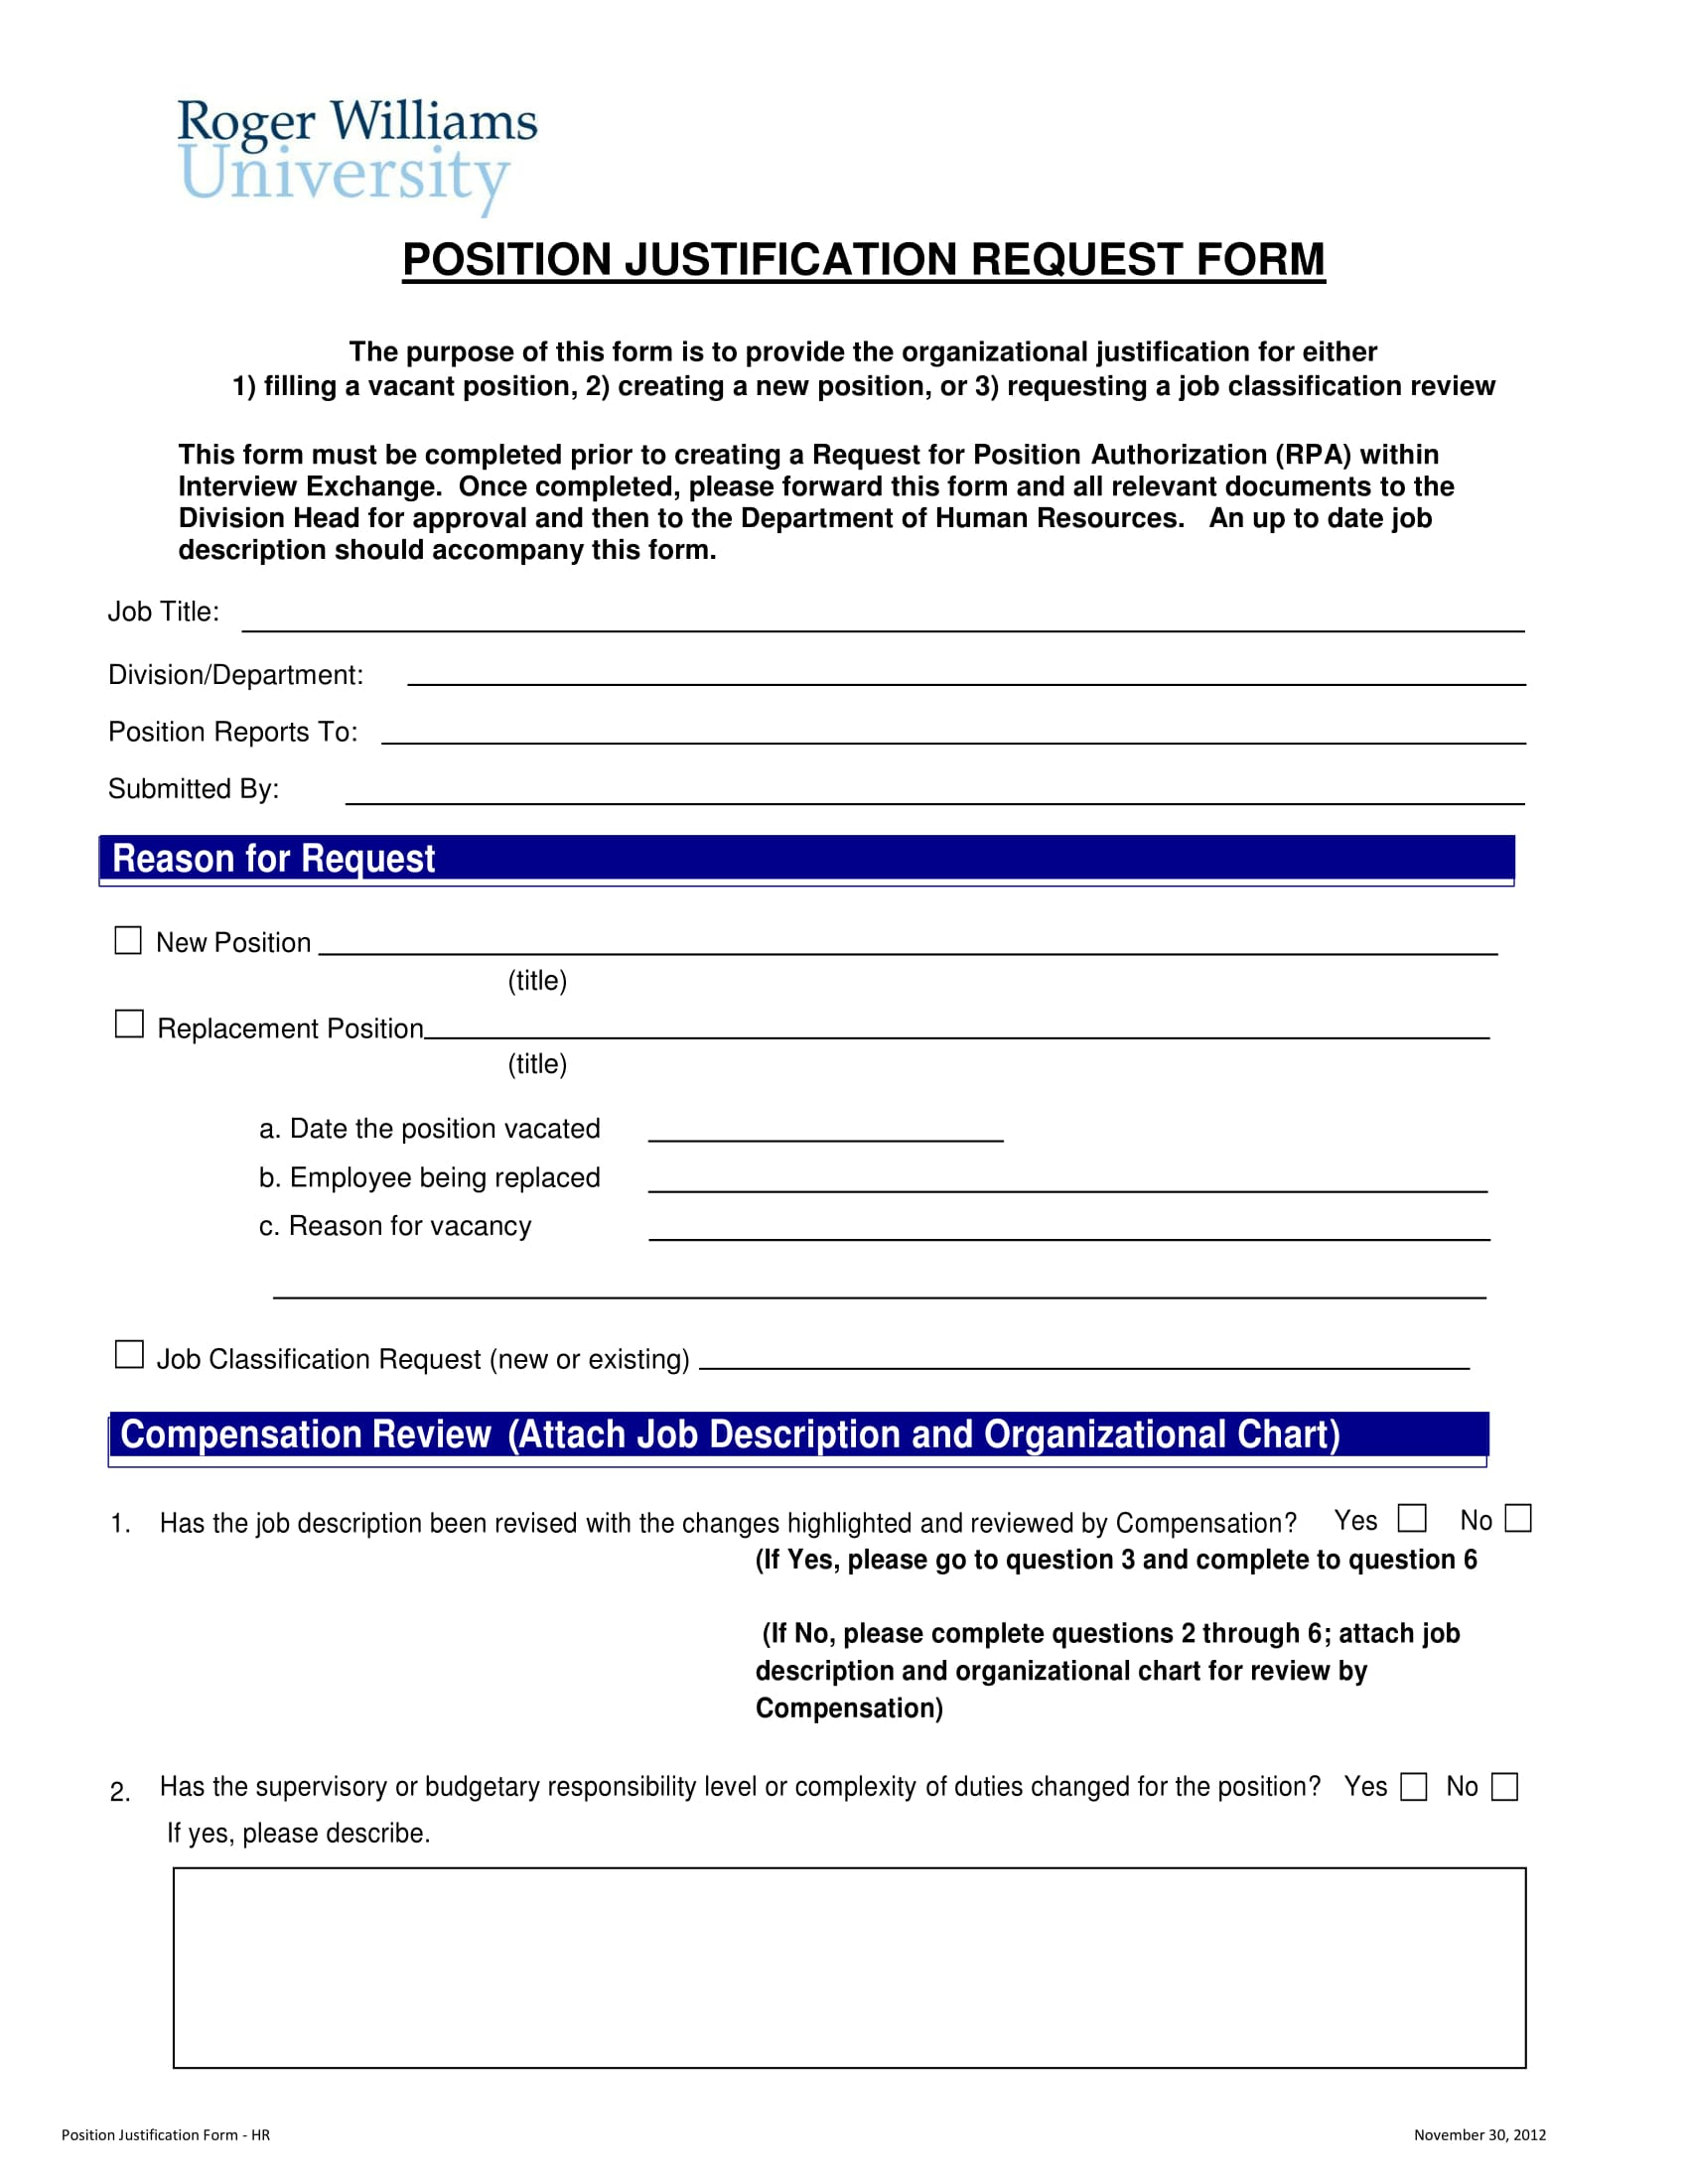 position justification request form 1